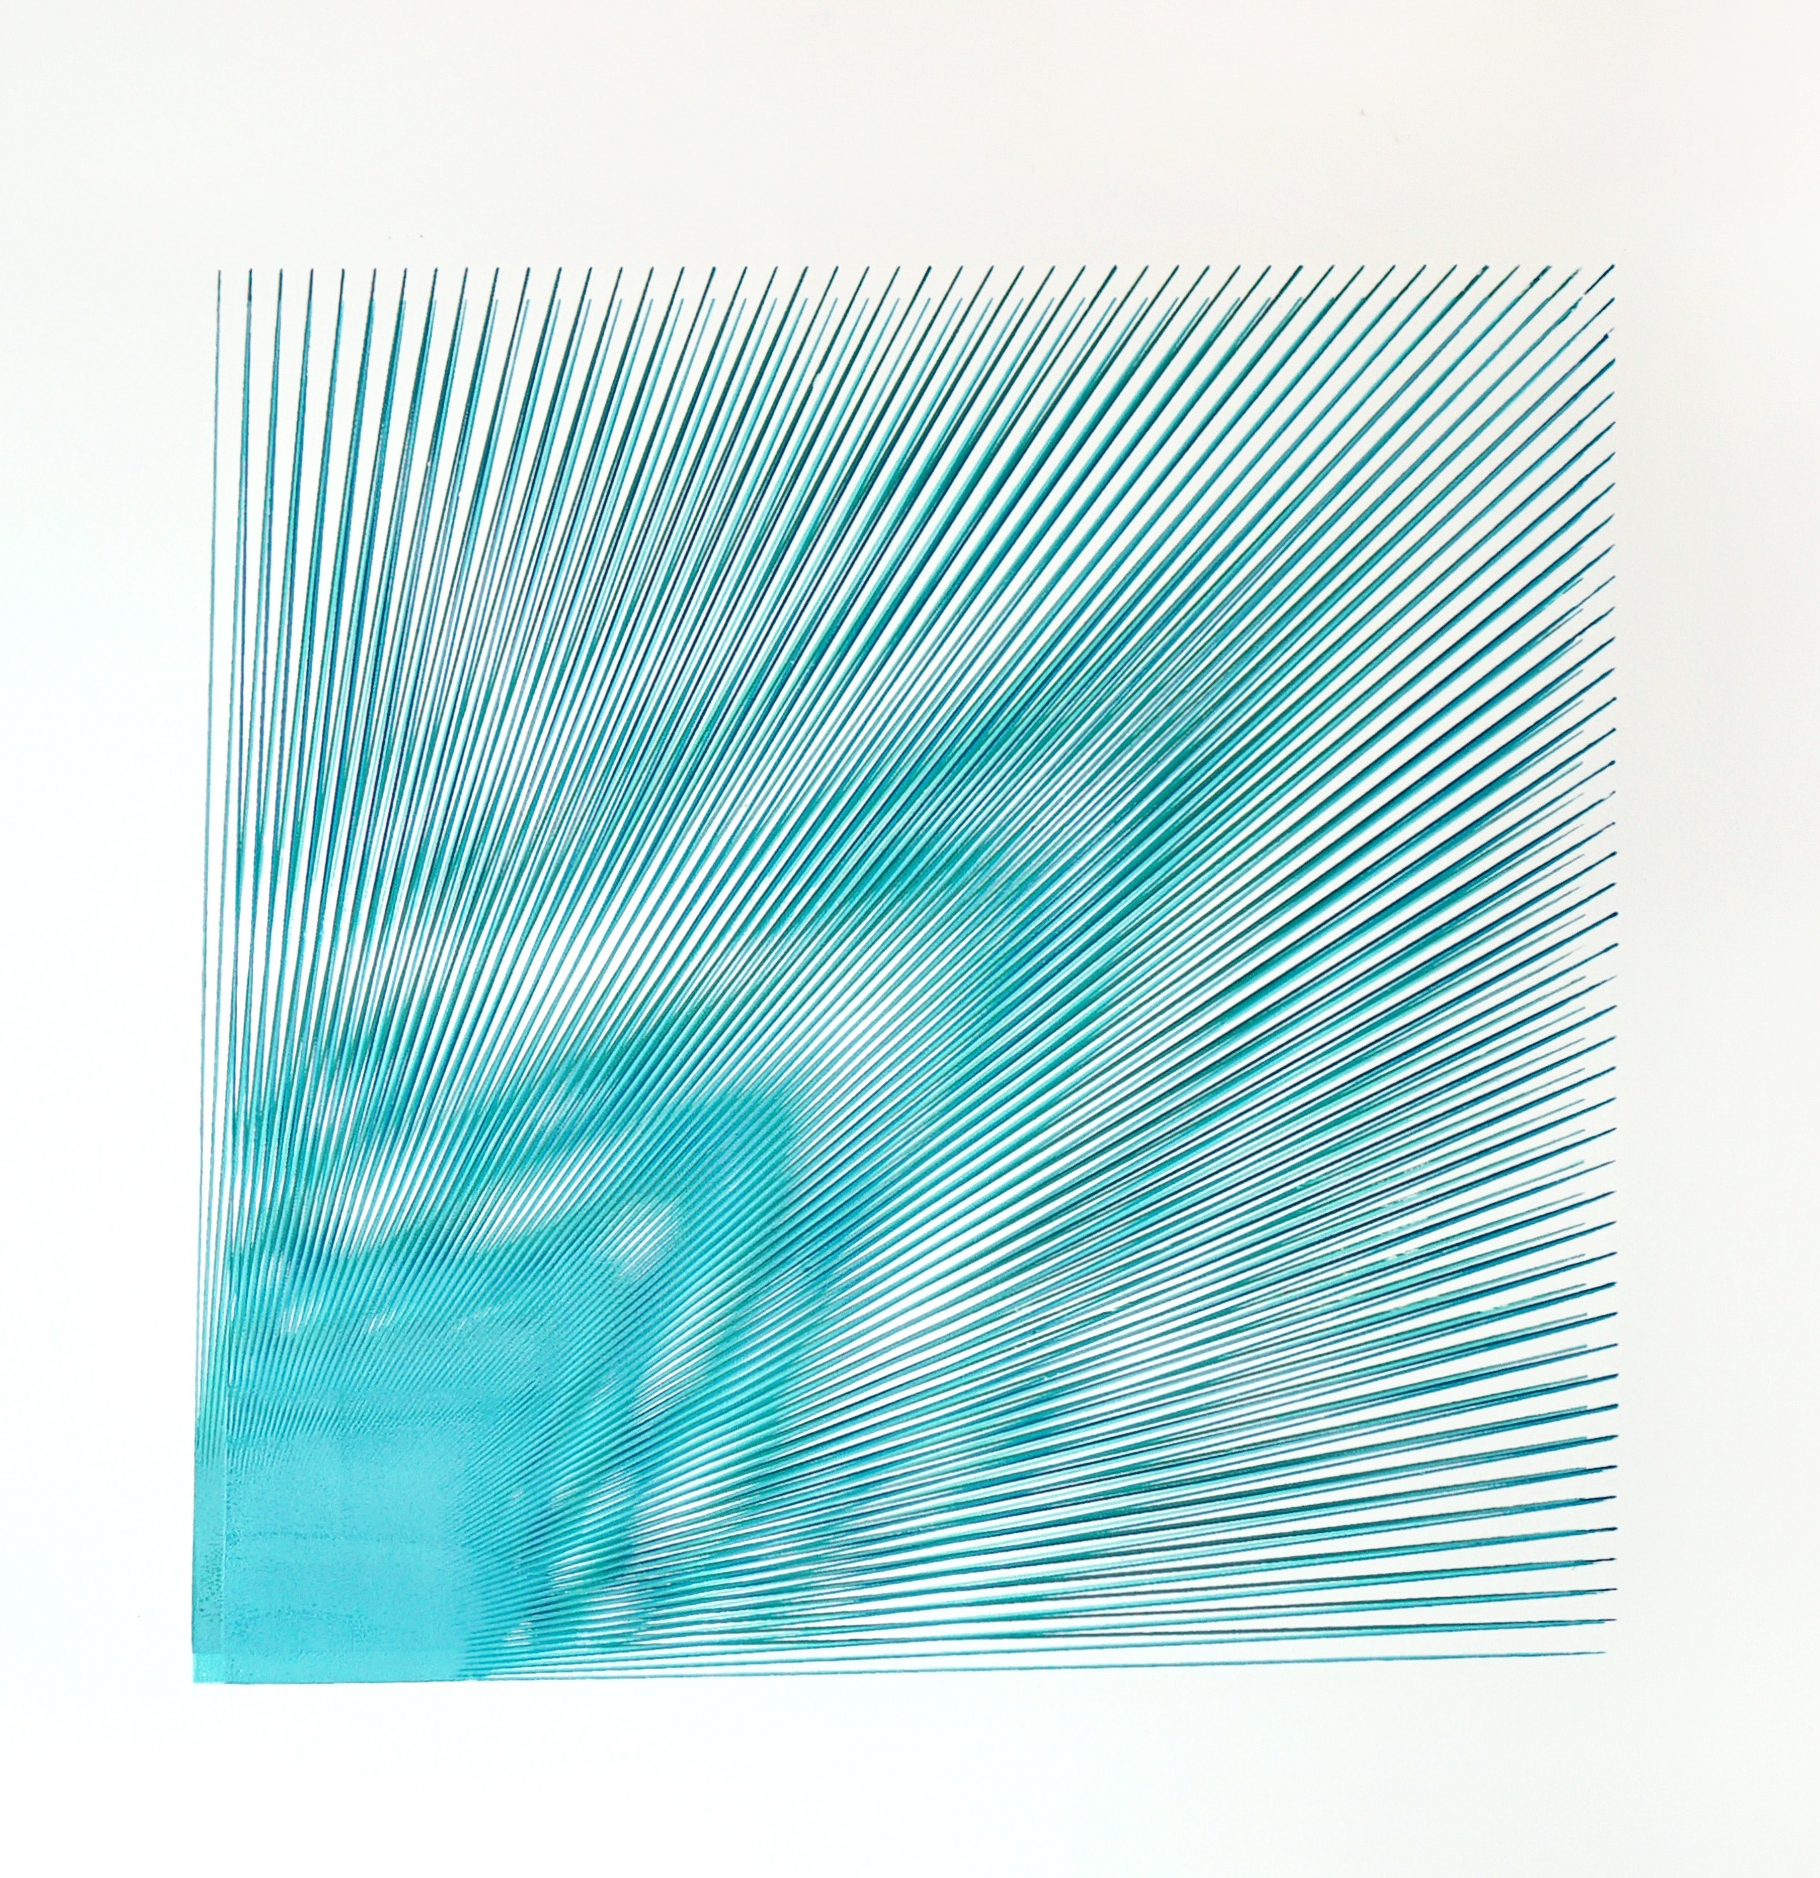 'Rupture 1' (2018), acrylic paint screen printed on paper, image size within larger sheet of paper 50 x 50 cm